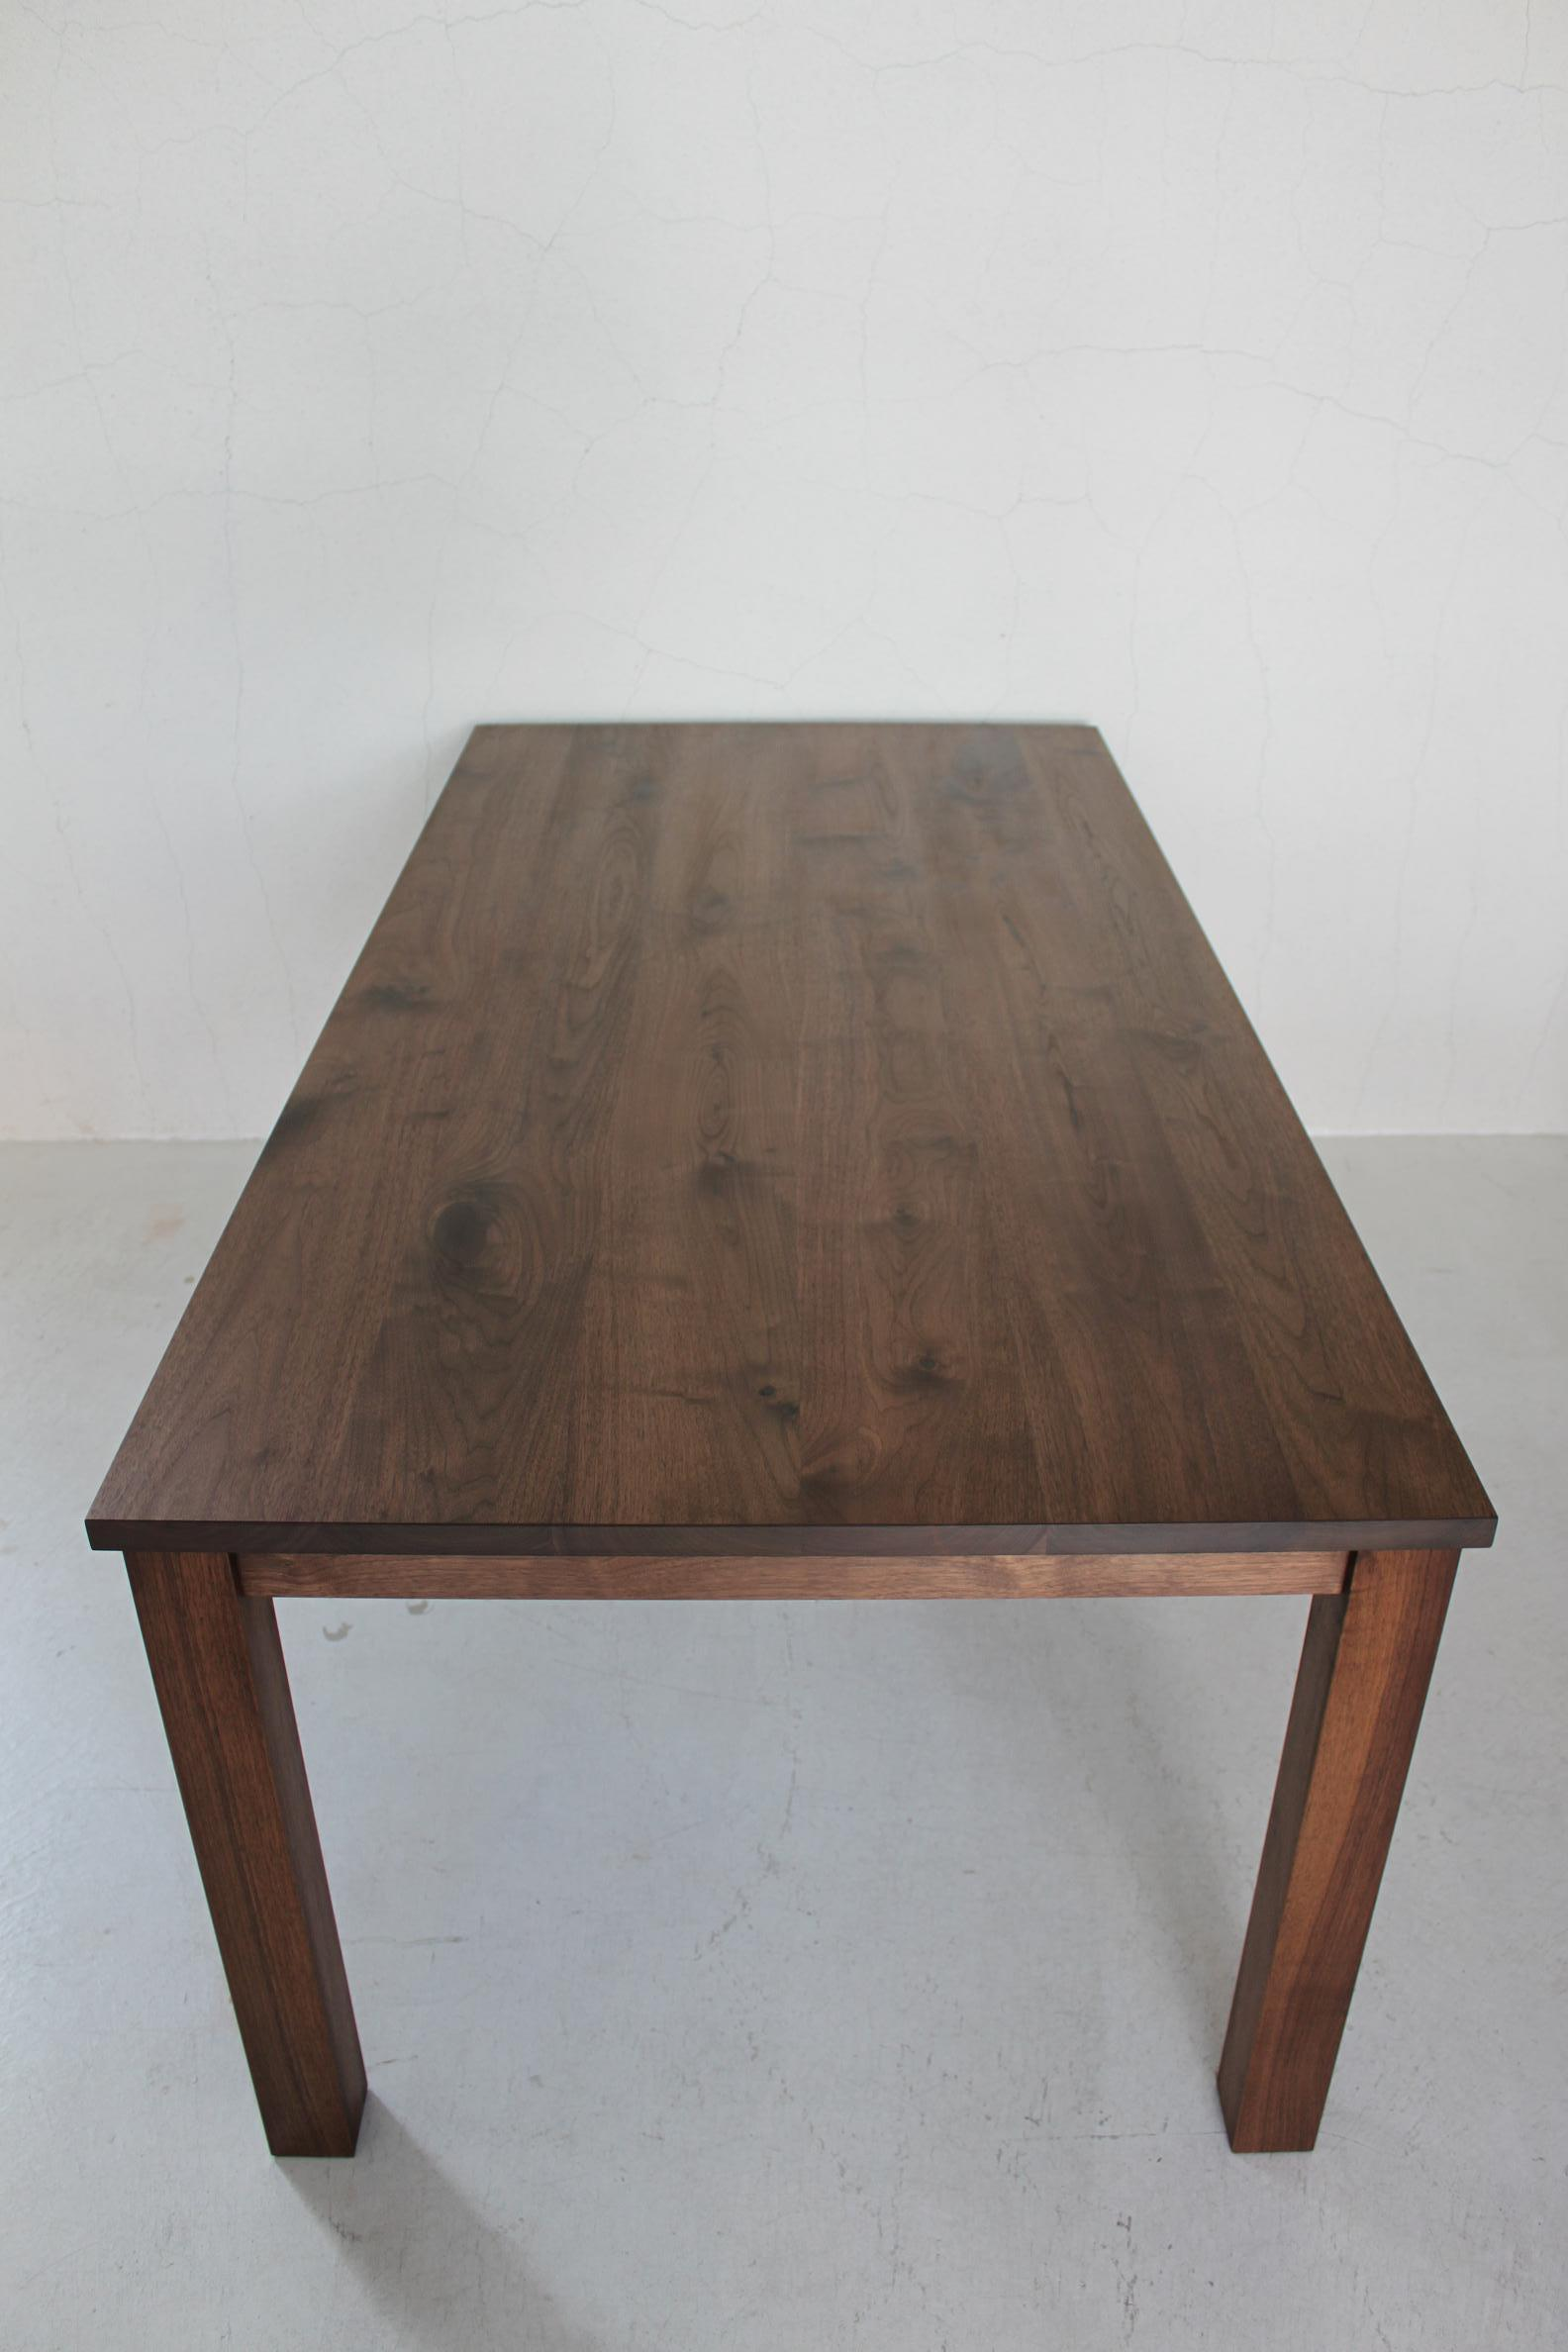 NS DINING TABLE_c0146581_12413233.jpg